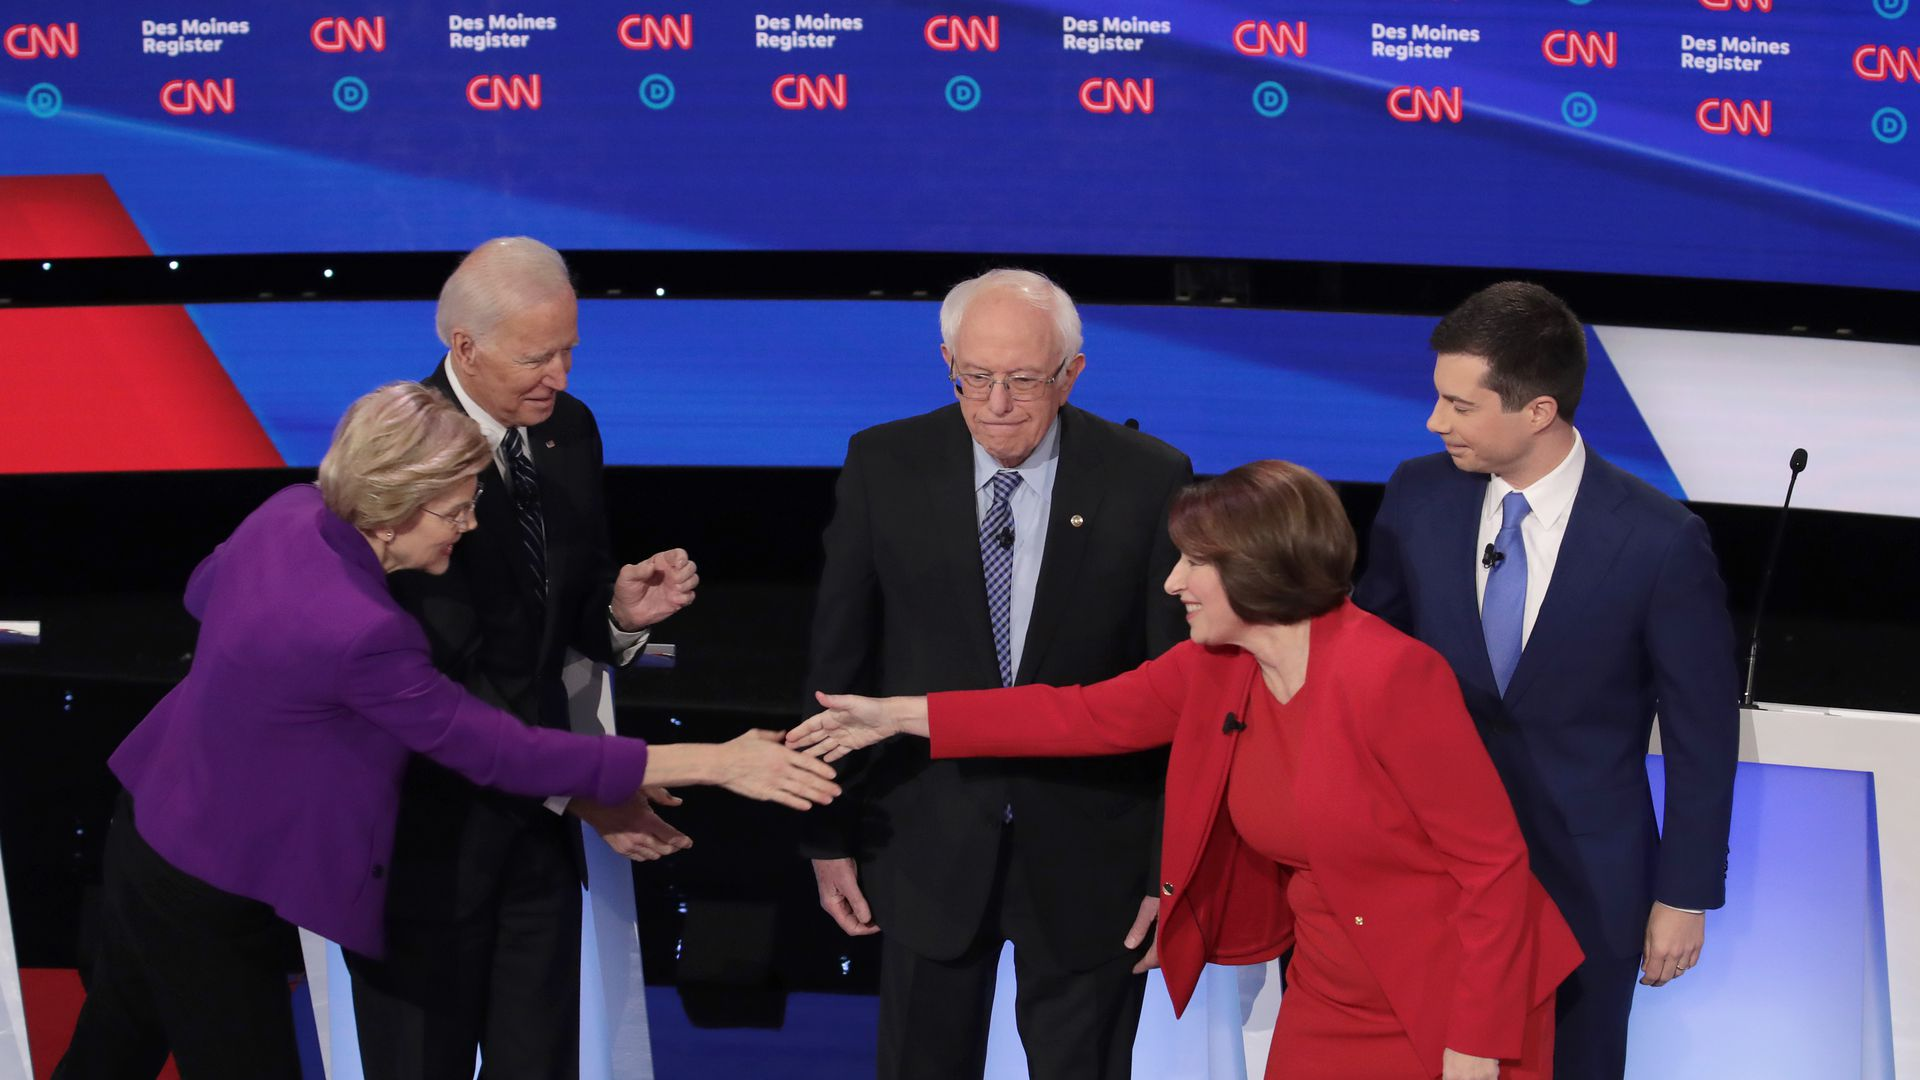 Democratic candidates at the debate